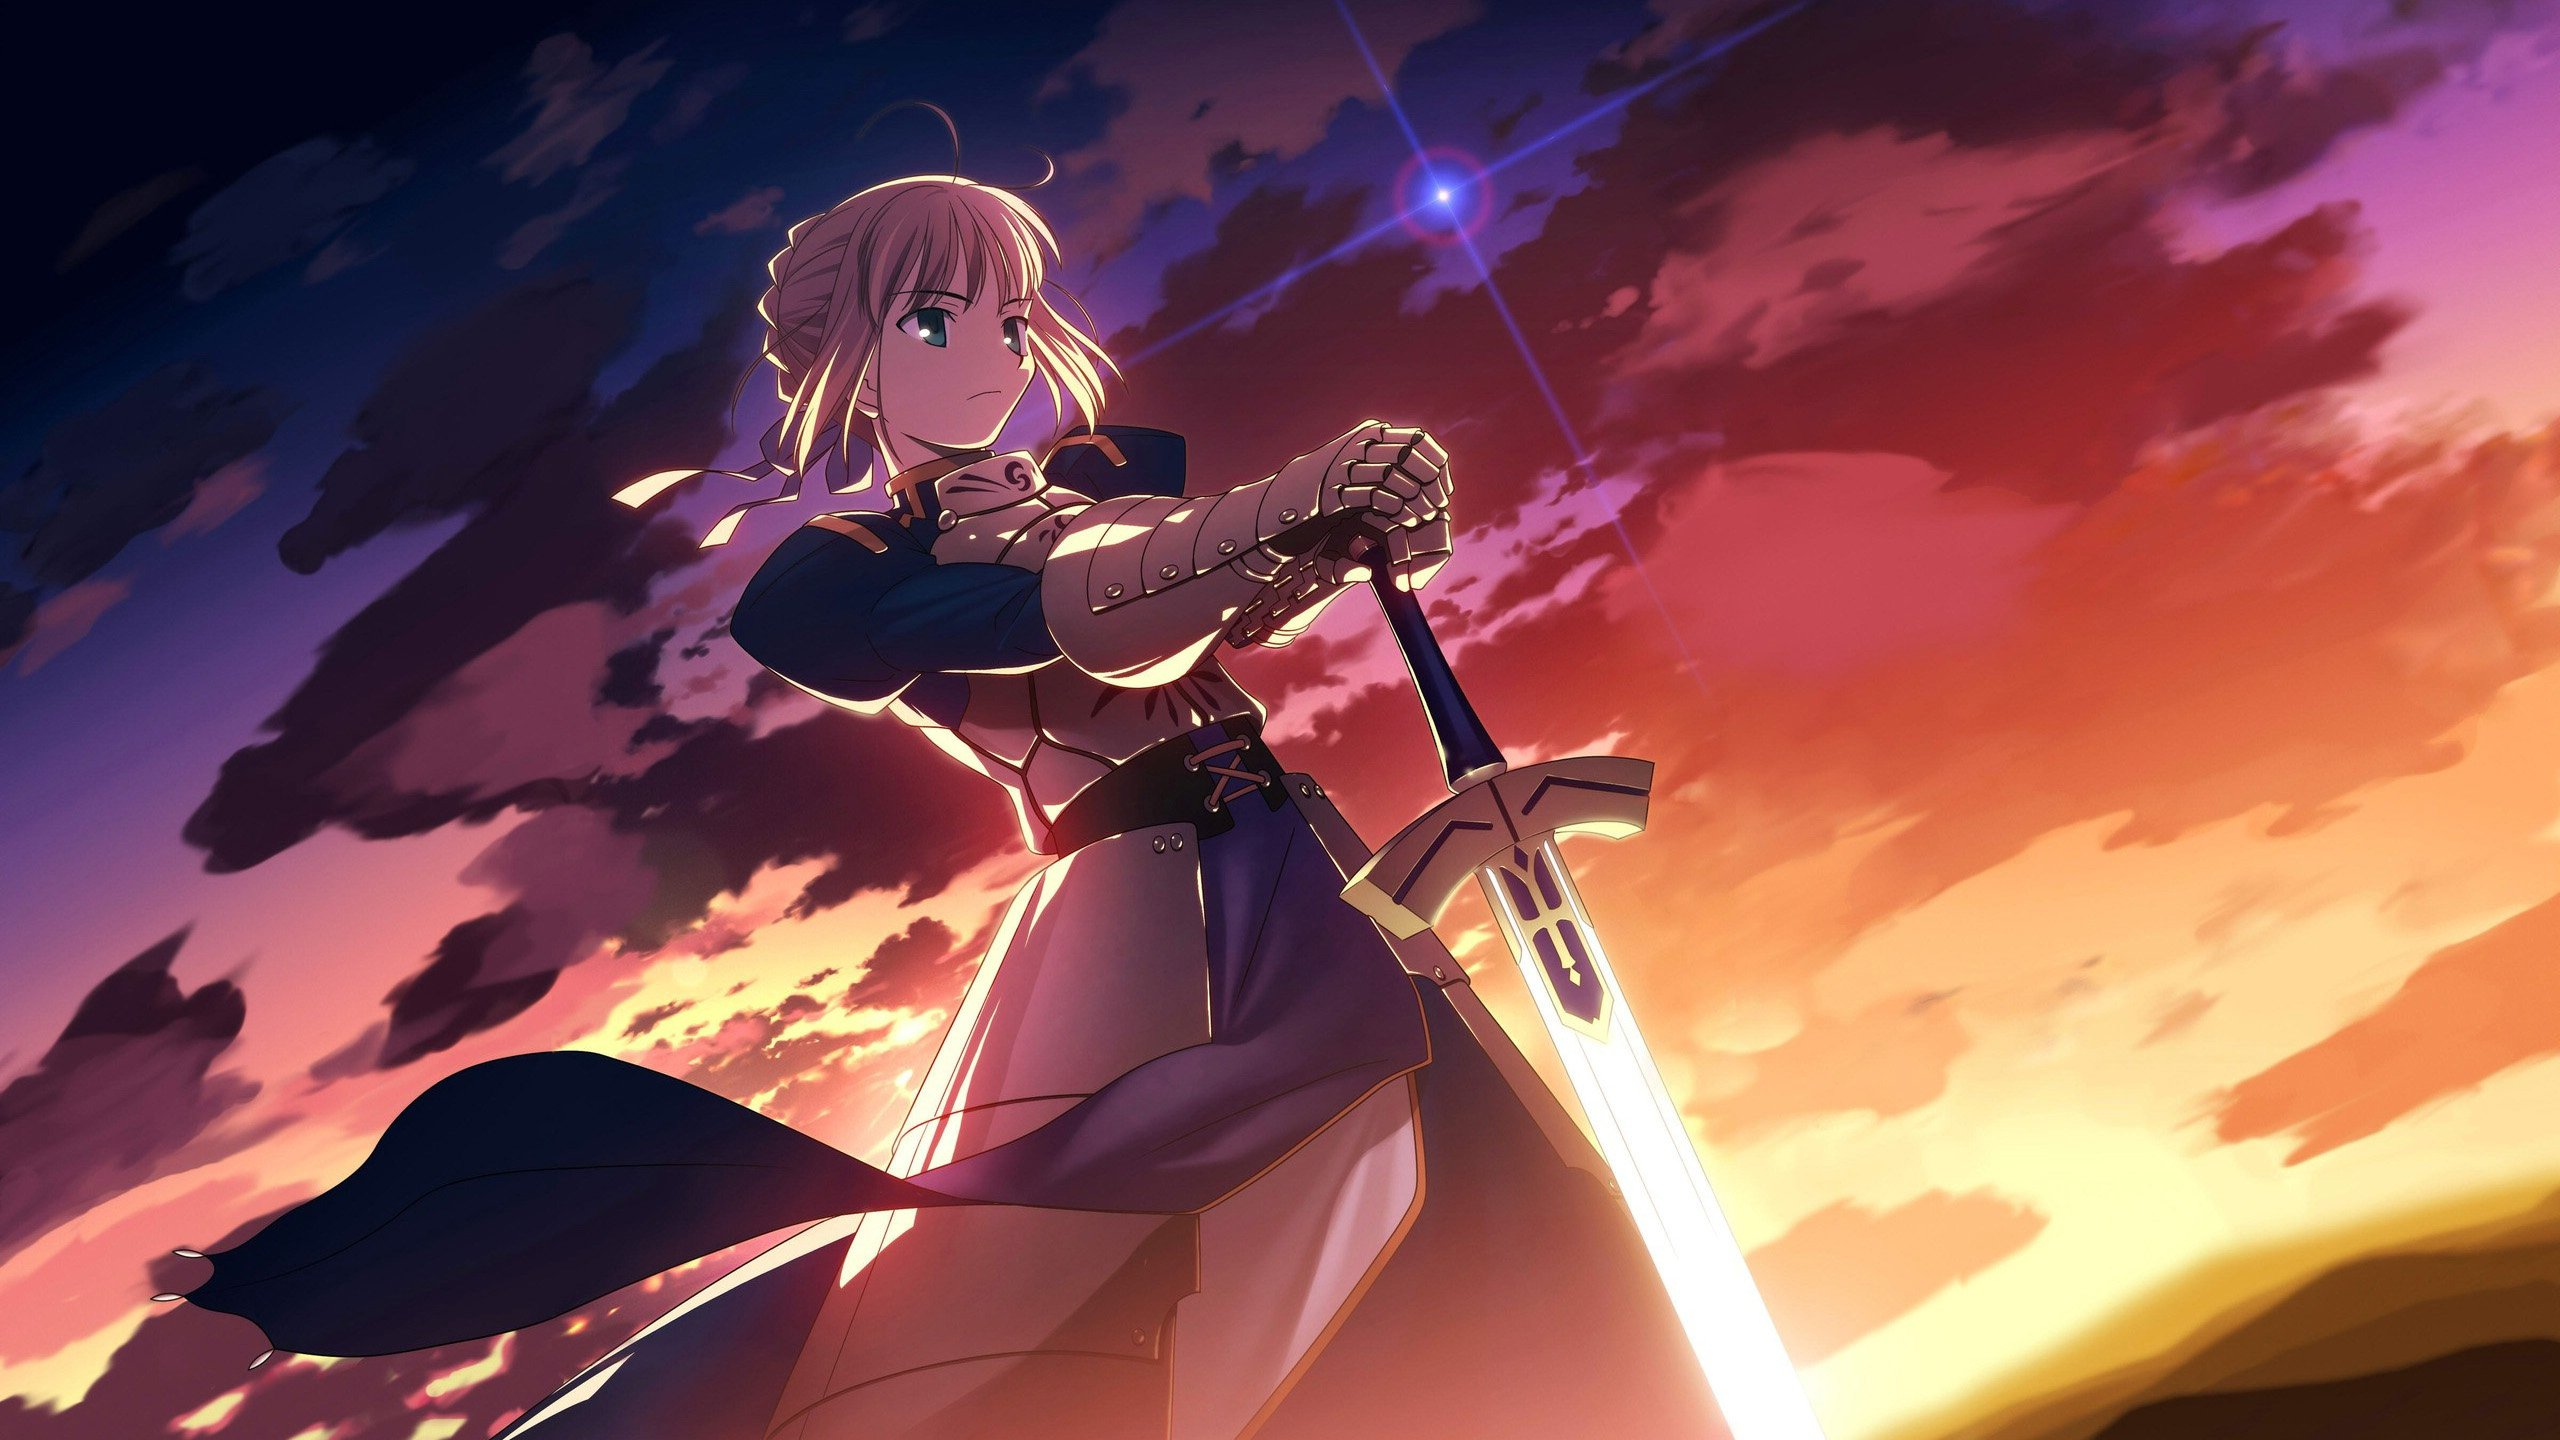 75 Saber Wallpaper On Wallpapersafari